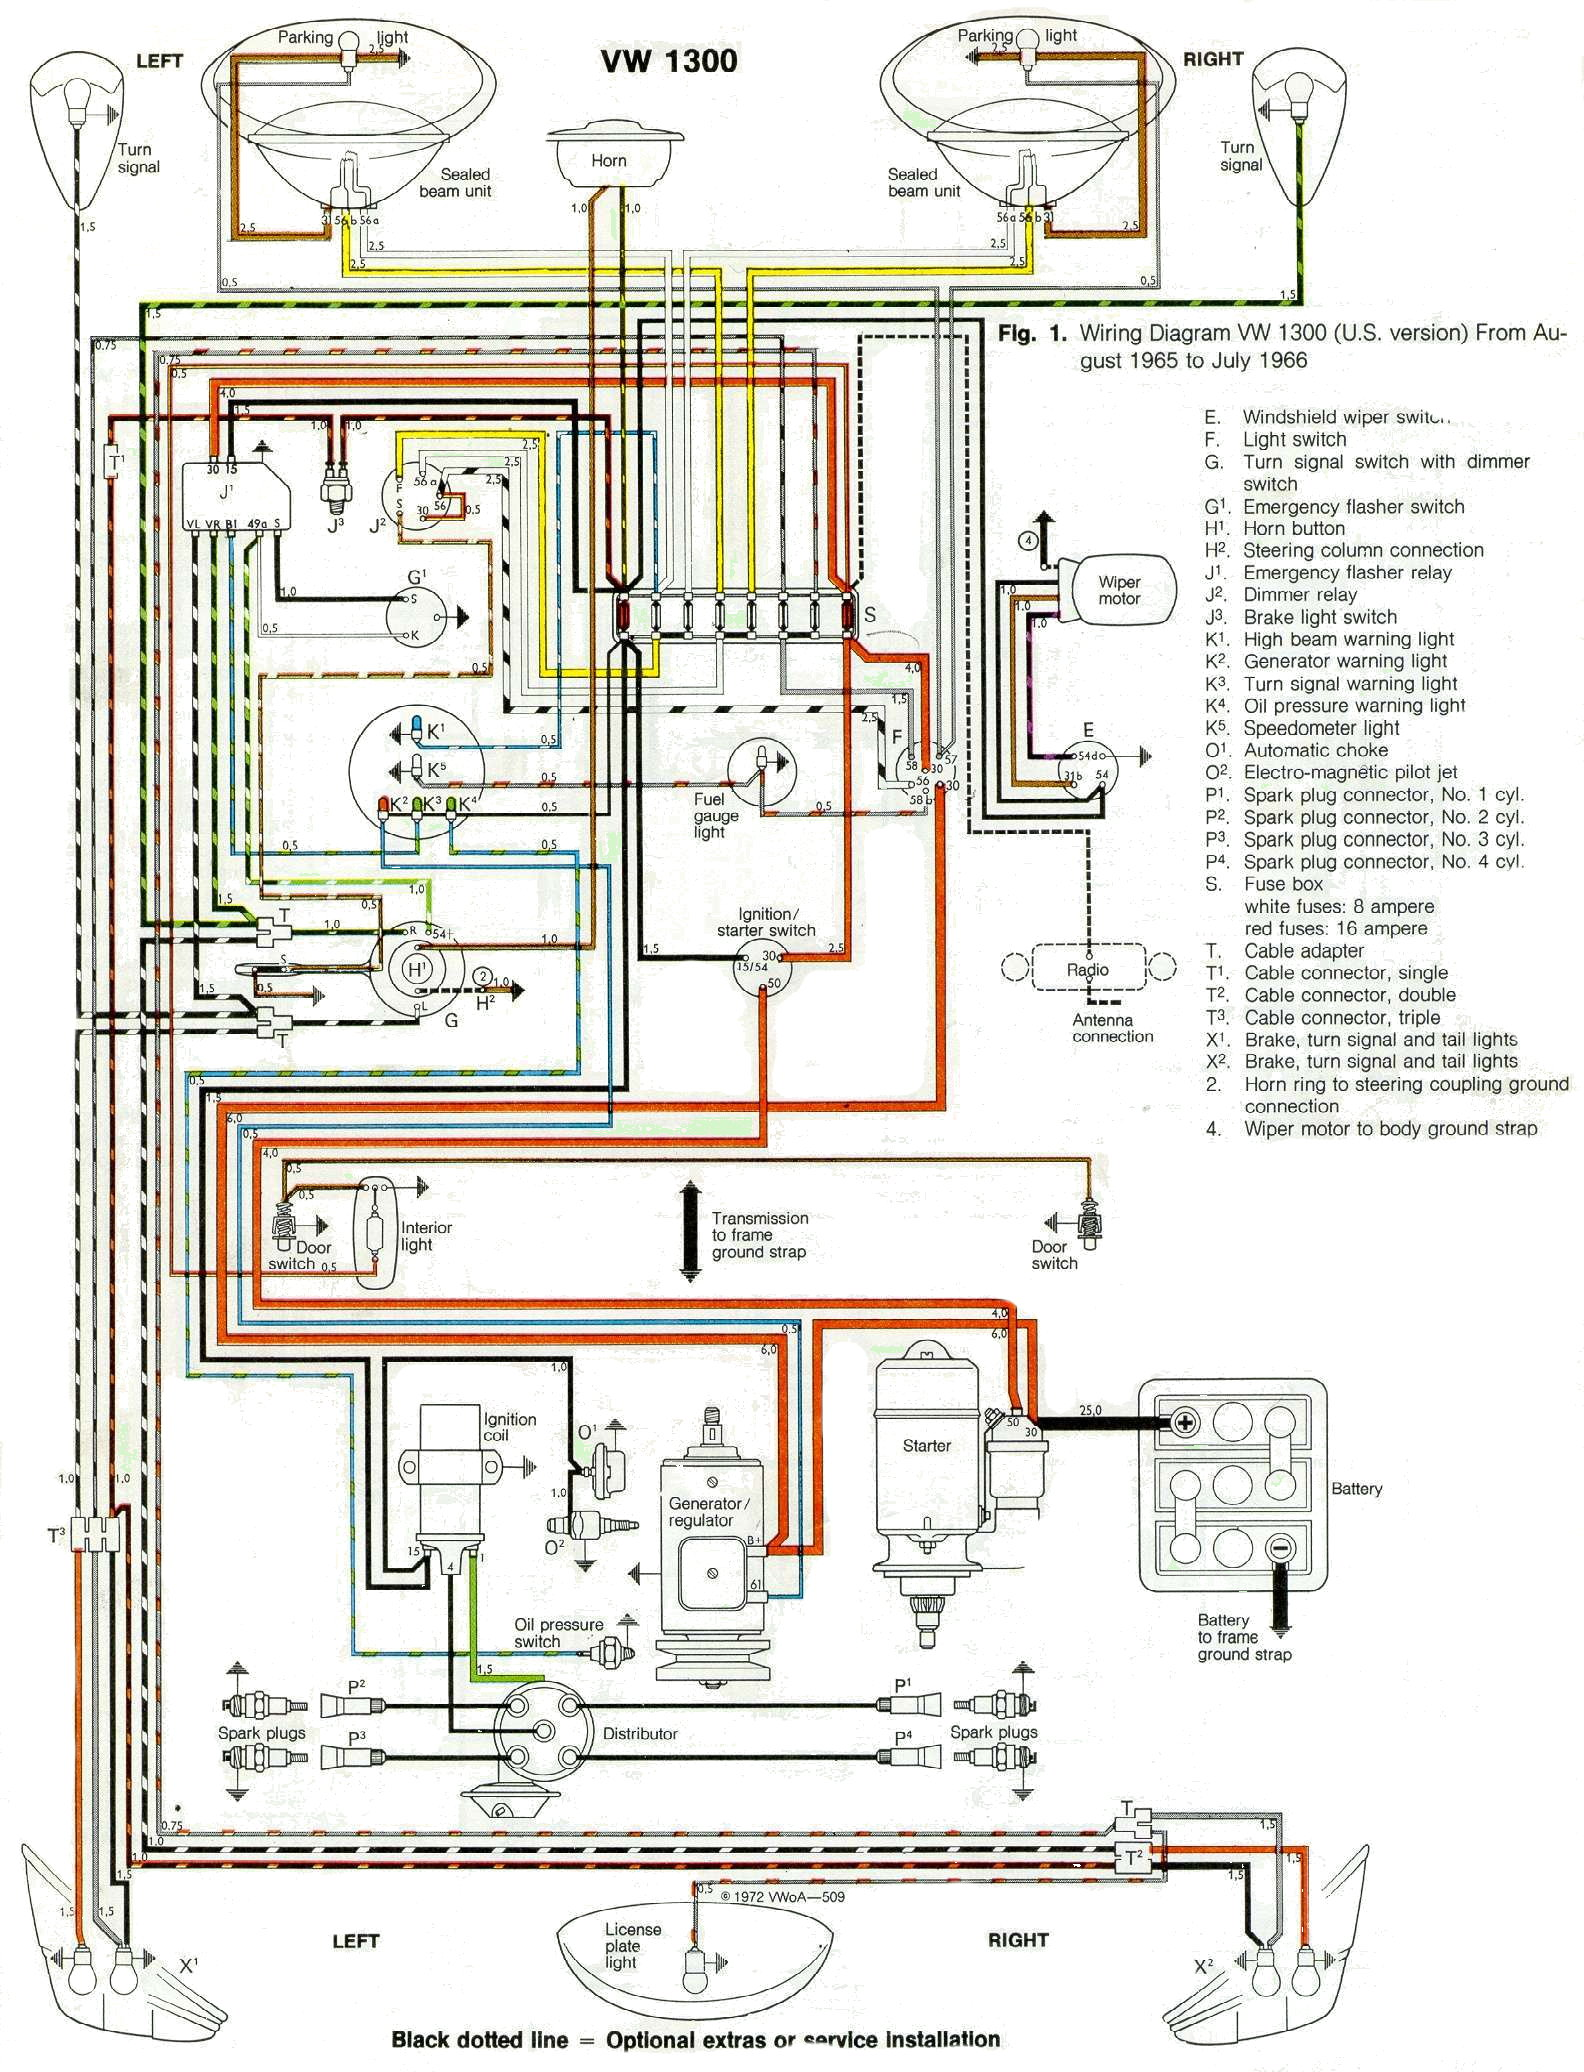 1966 Wiring 1966 wiring diagram vw bug wiring harness installation at crackthecode.co